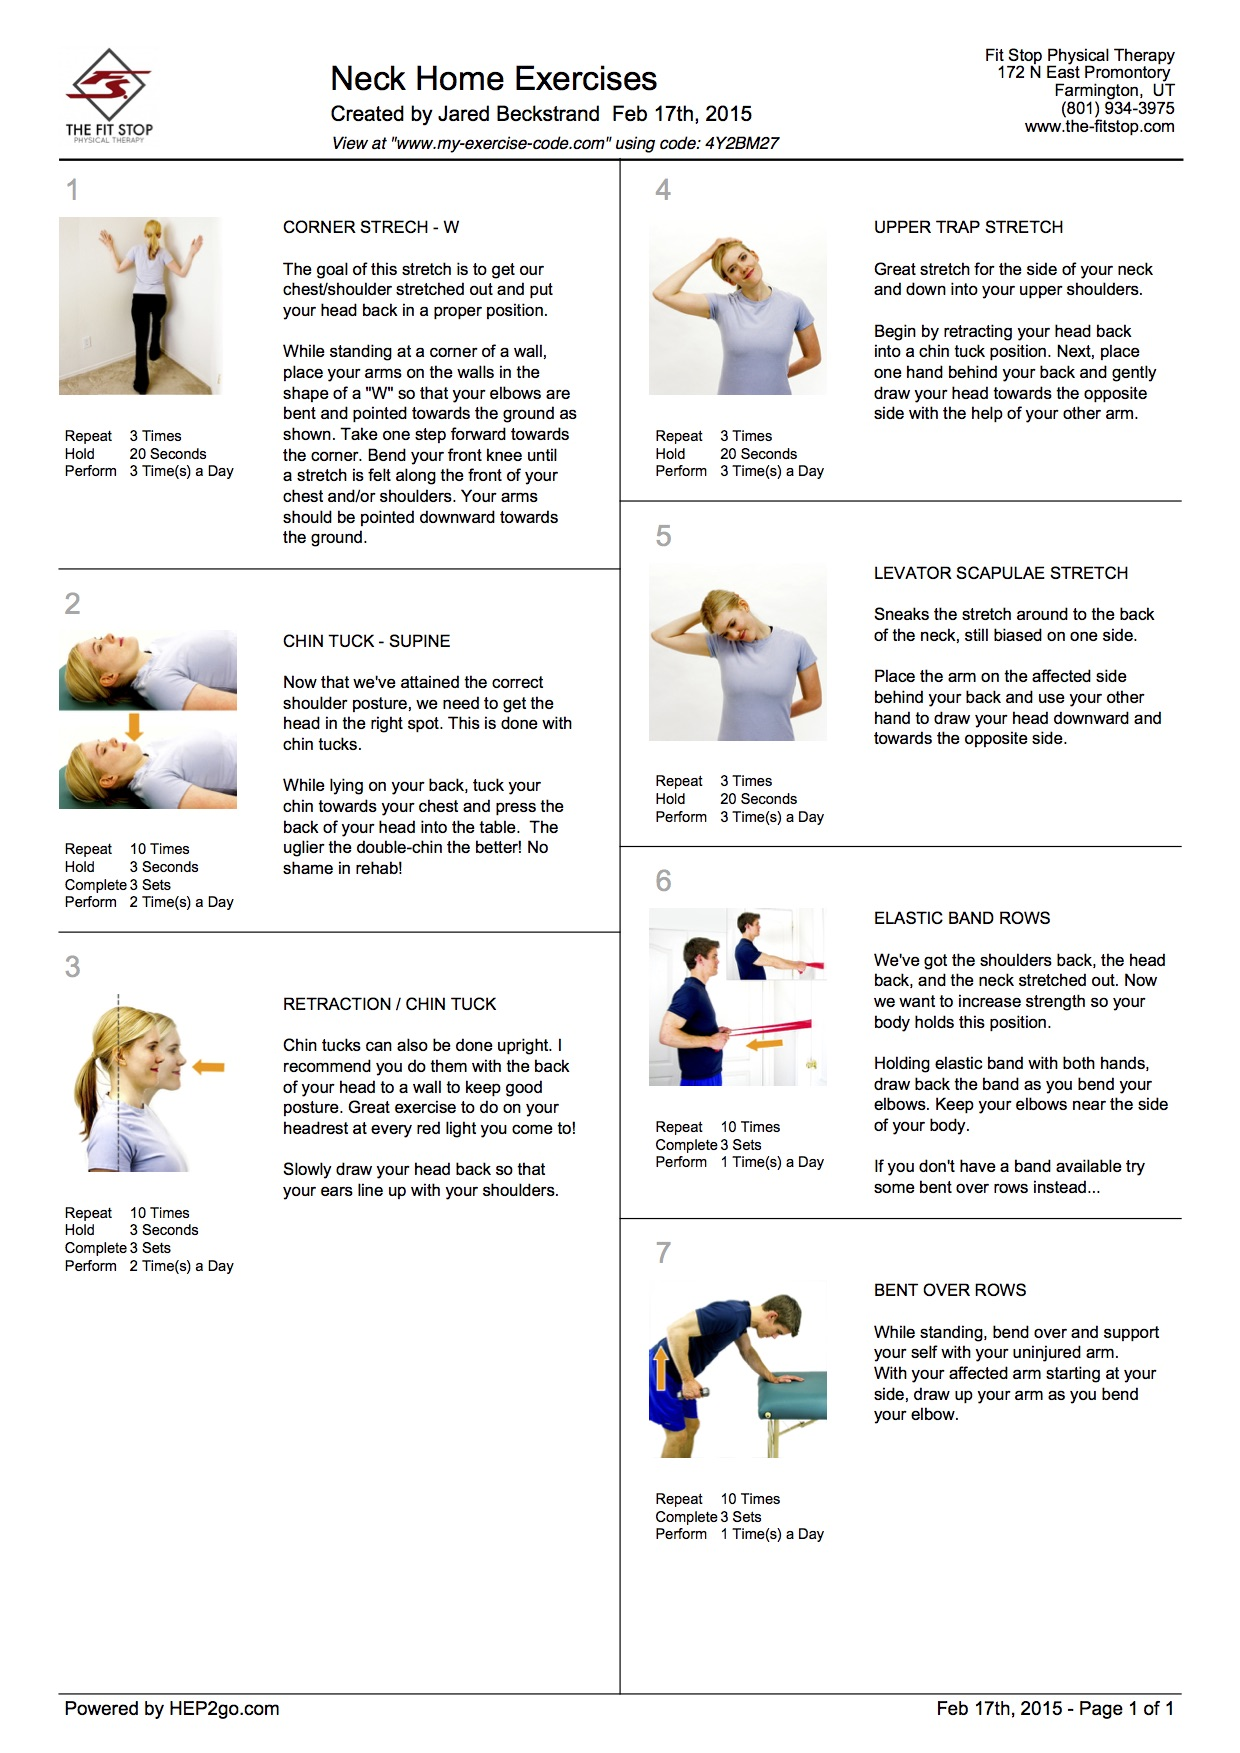 how to start an exercise program at home